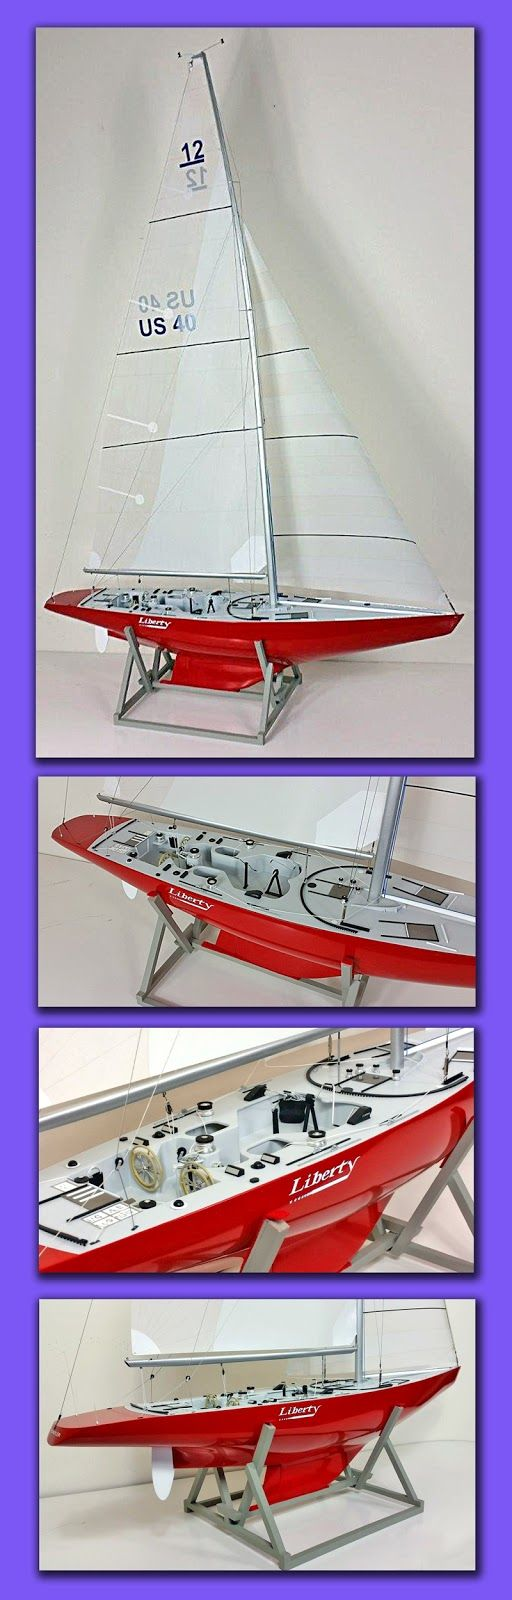 Since 1983 we have built 6 models of 'Australia II' but never a model of the yacht that lost the 'America's Cup' ! Well now as you can see, we have remedied that situation. The owner of one of our 'Australia II' models commissioned us to build a model to the same scale. After a month of searching  we located original plans in Holland and started on our work about six months ago. The results of our labour you can see here. Is this the only model of 'Liberty' in Australia? The only other model…